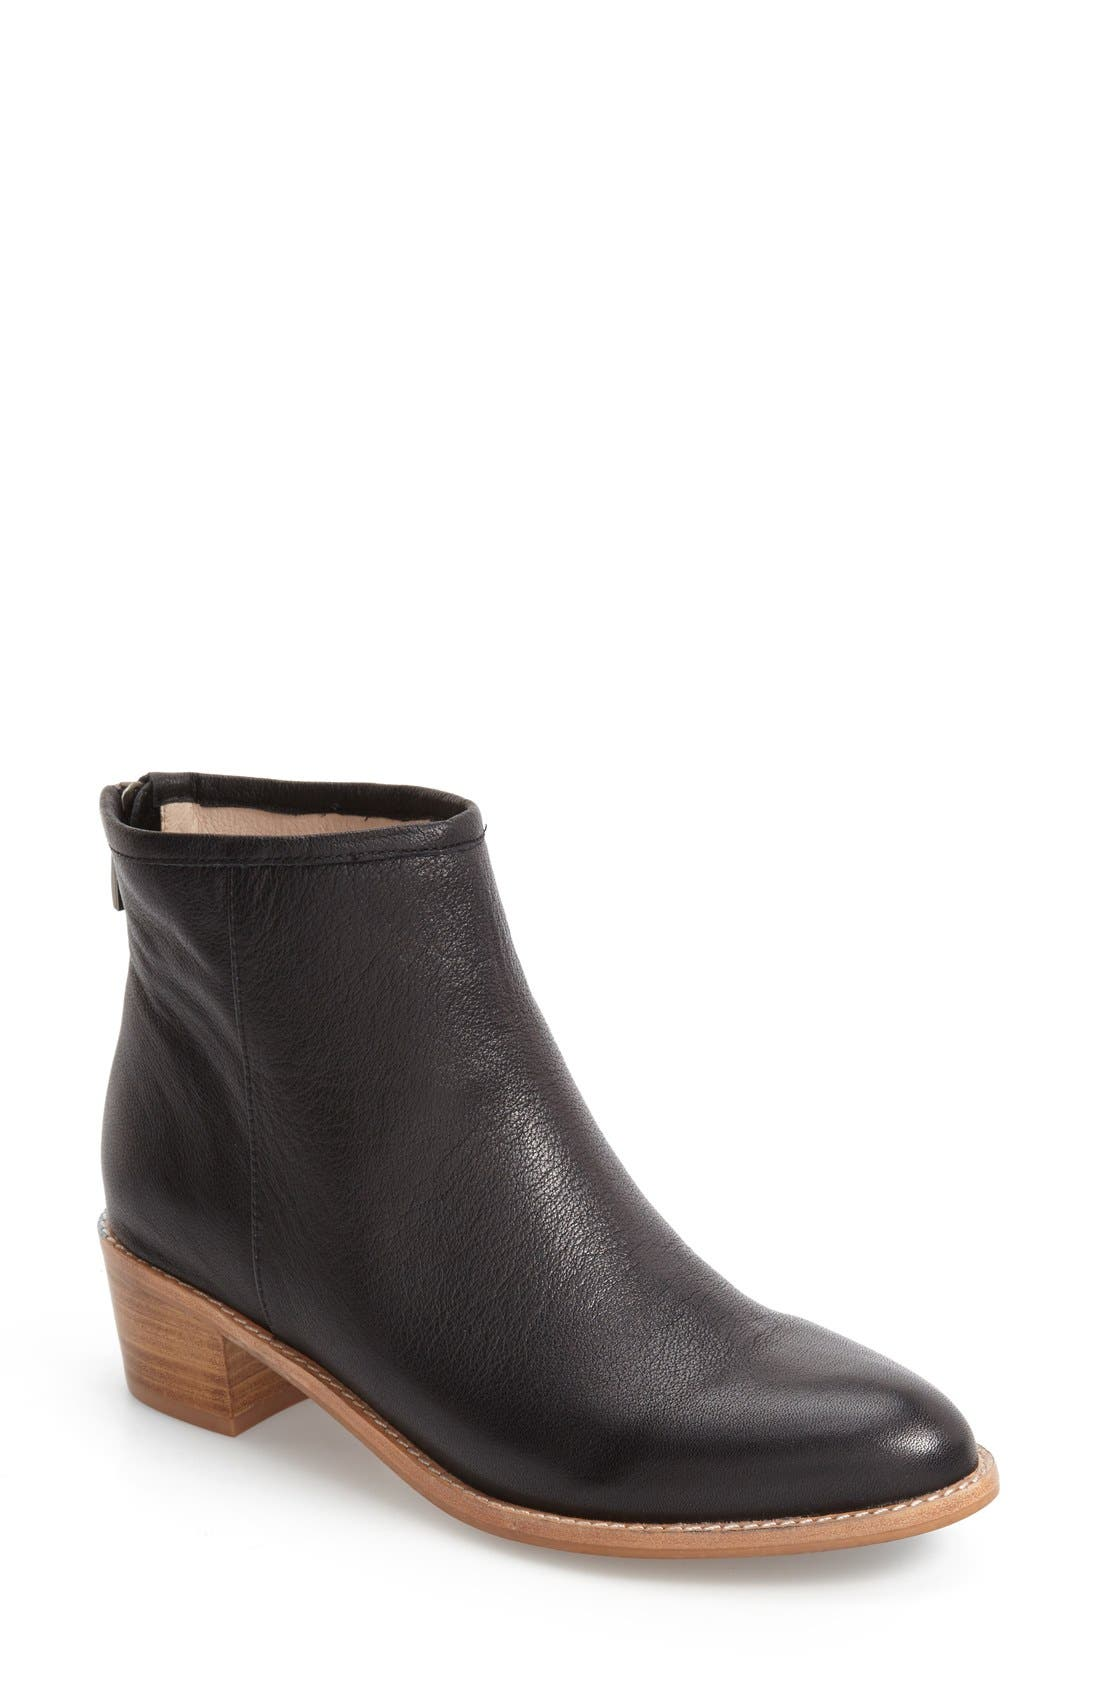 Mae Bootie,                         Main,                         color, 001